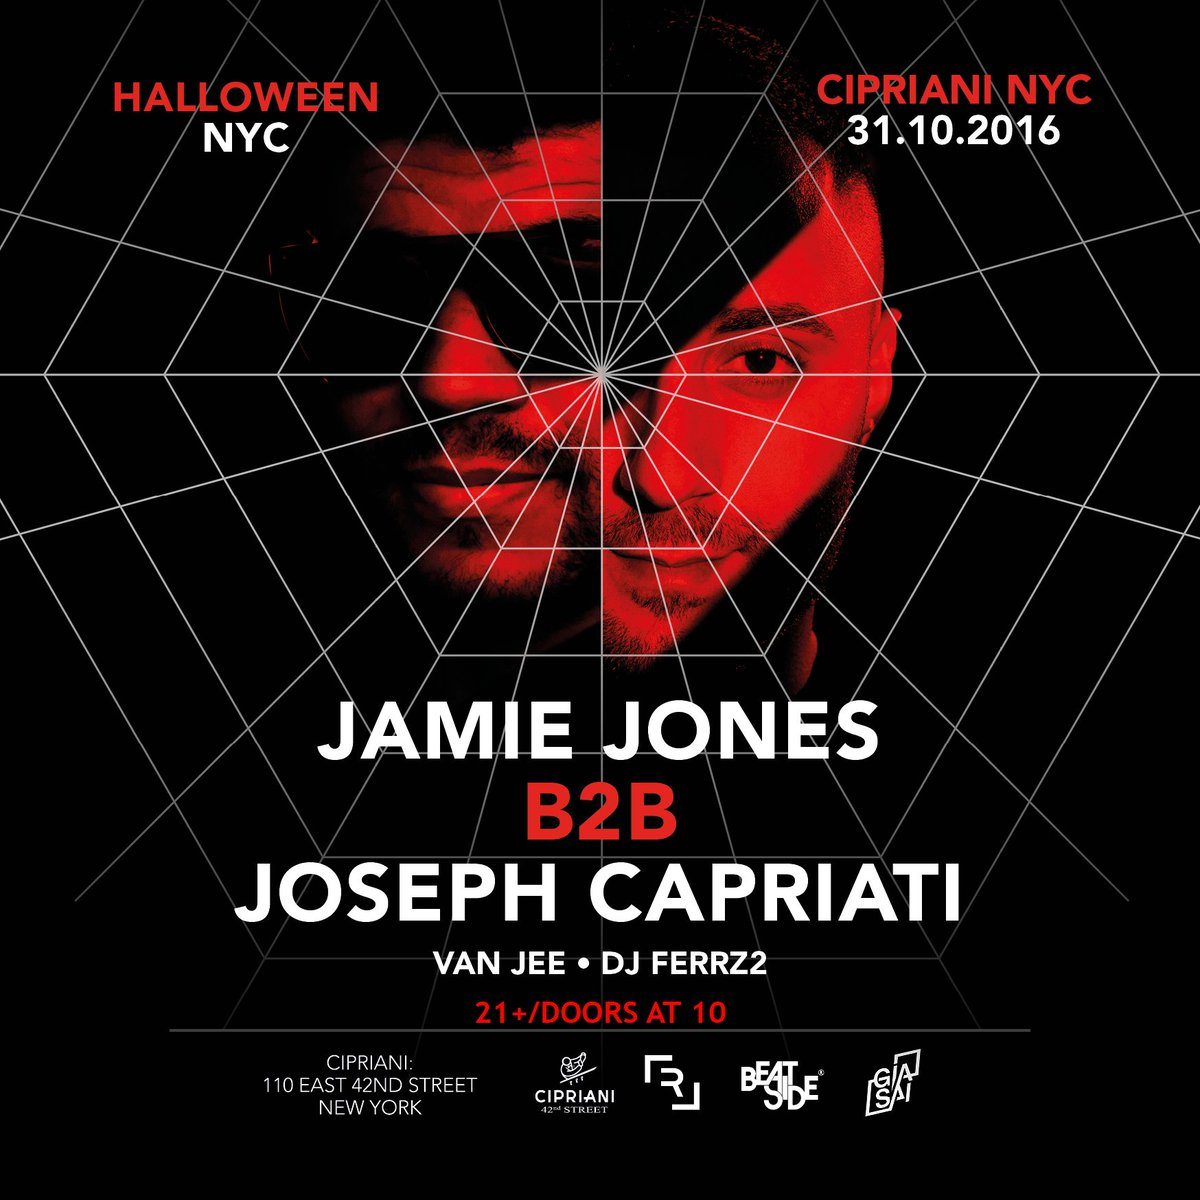 live nation nyc on twitter get tickets now for cipriani nyc x halloween w jamiejonesmusic josephcapriati more httpstcoo1yc72v8wo